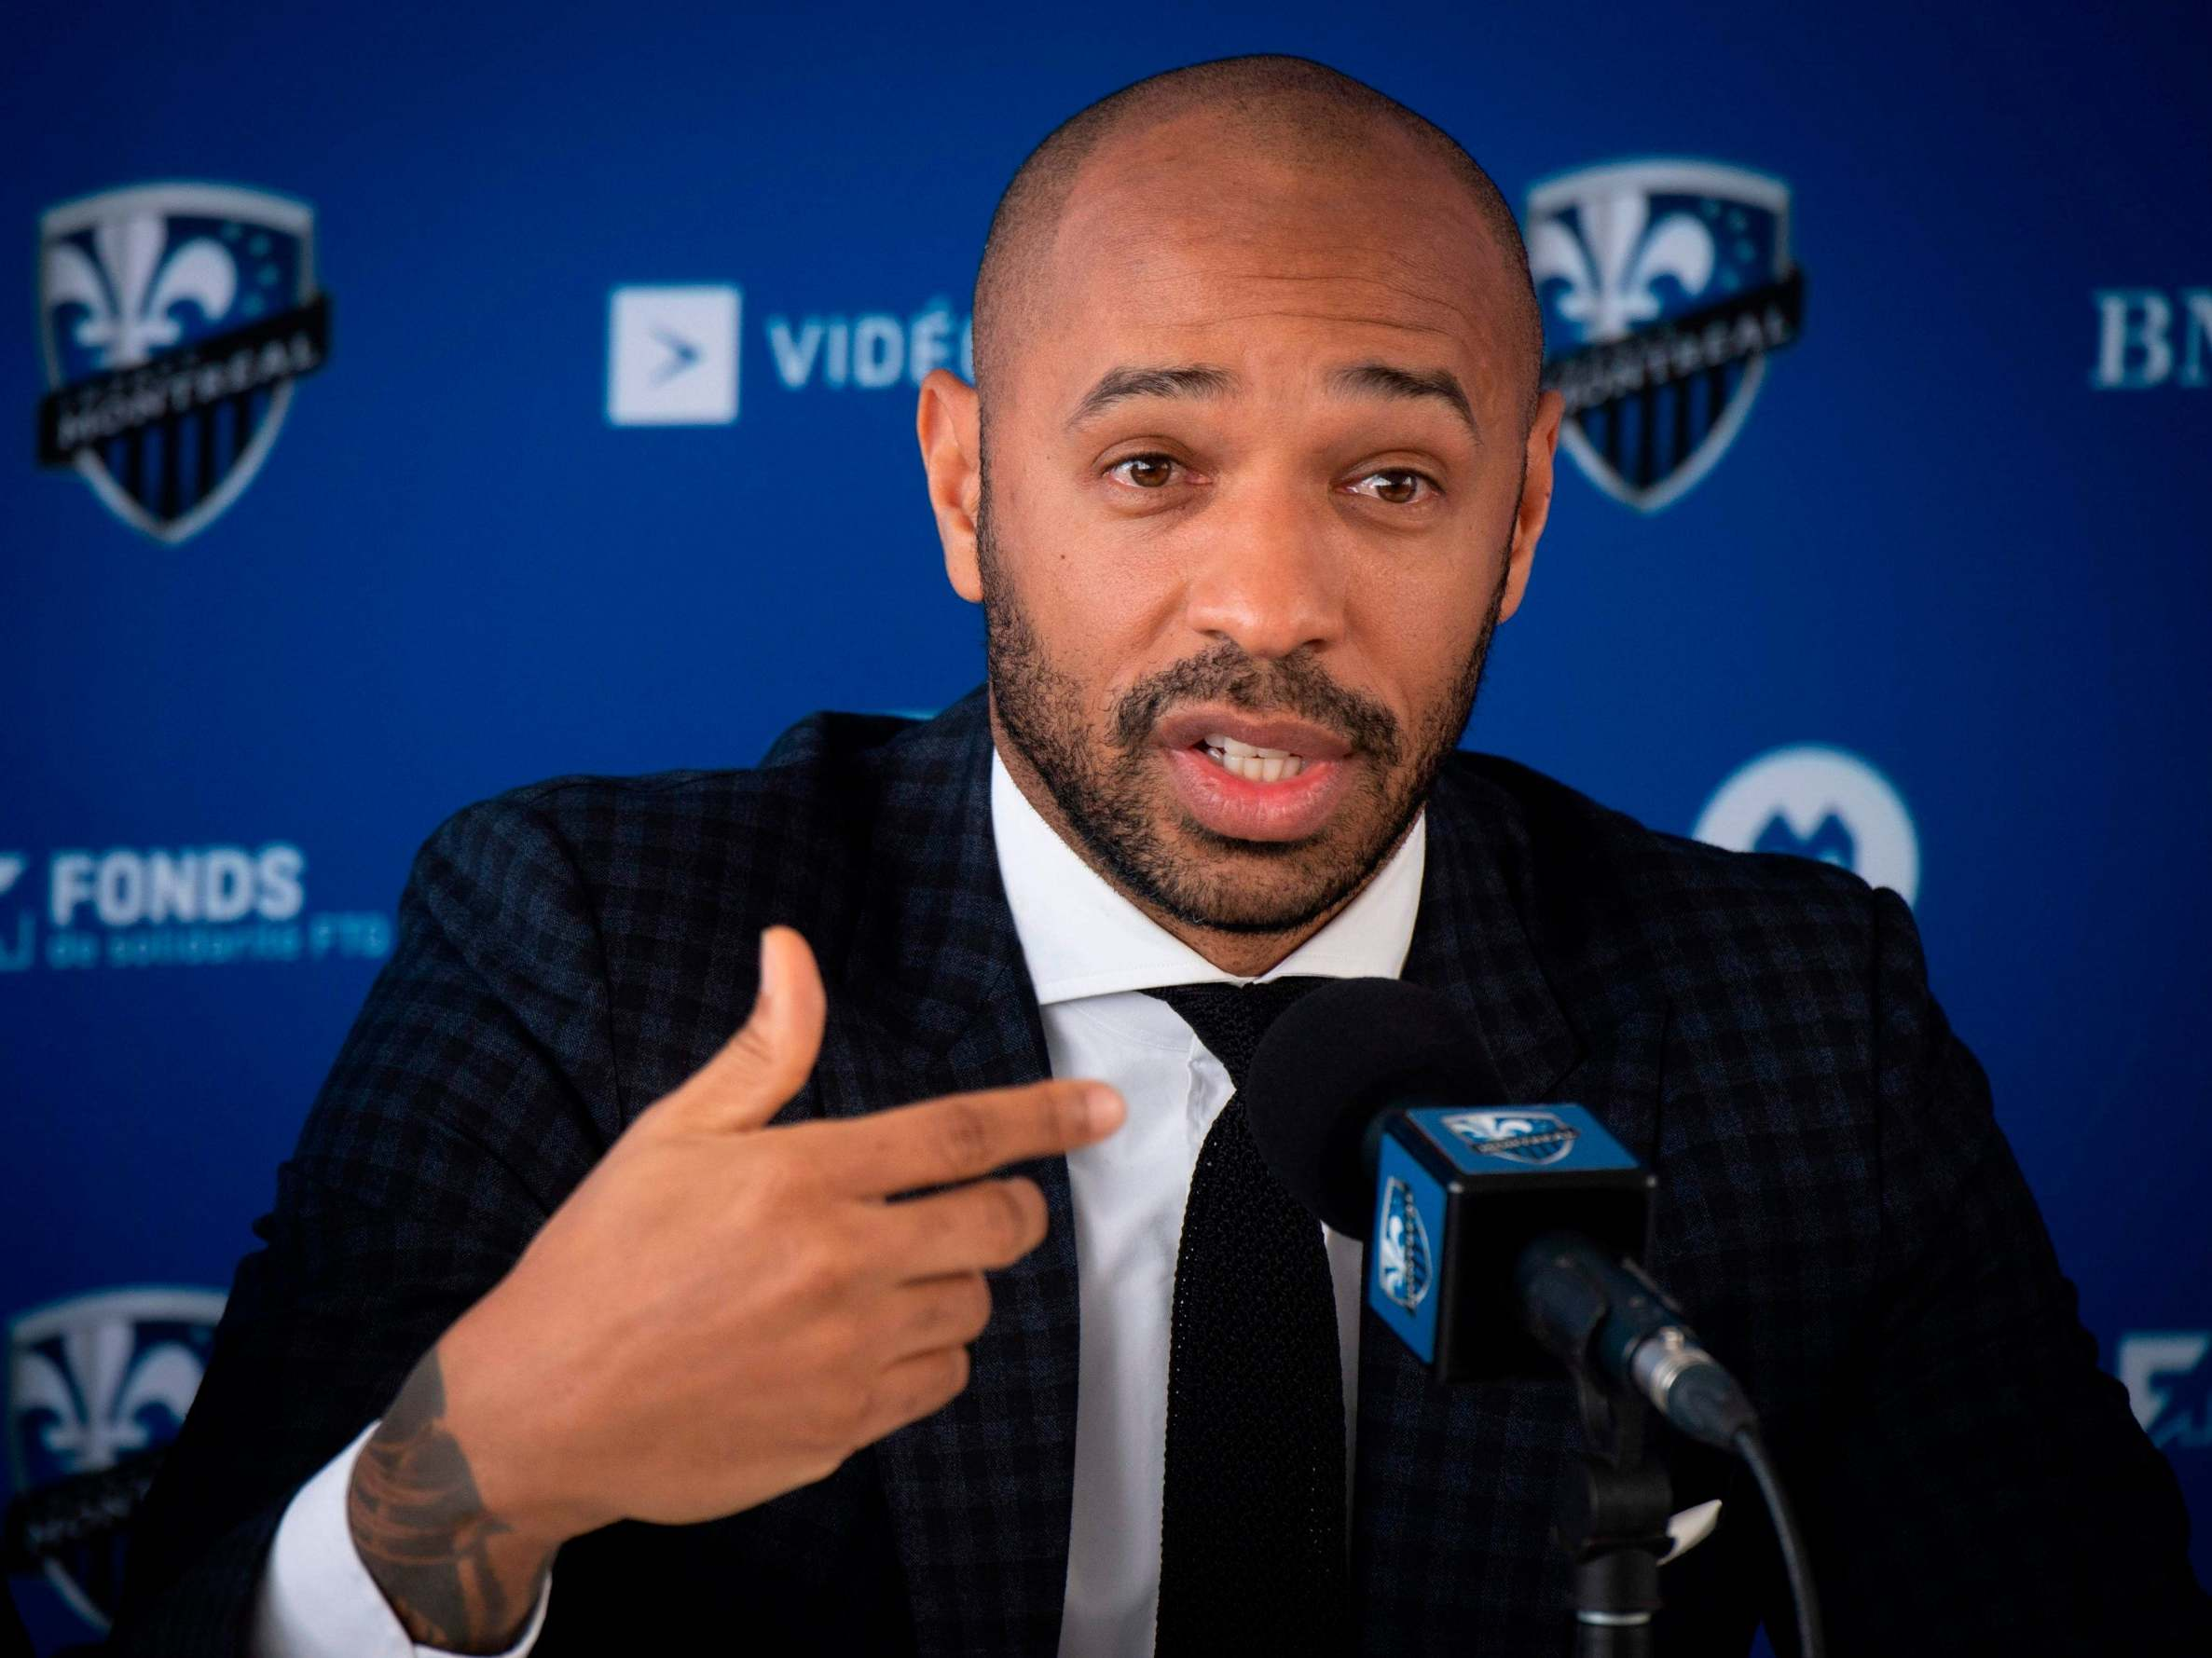 Thierry Henry on how he'll learn from AS Monaco mistakes at Montreal Impact